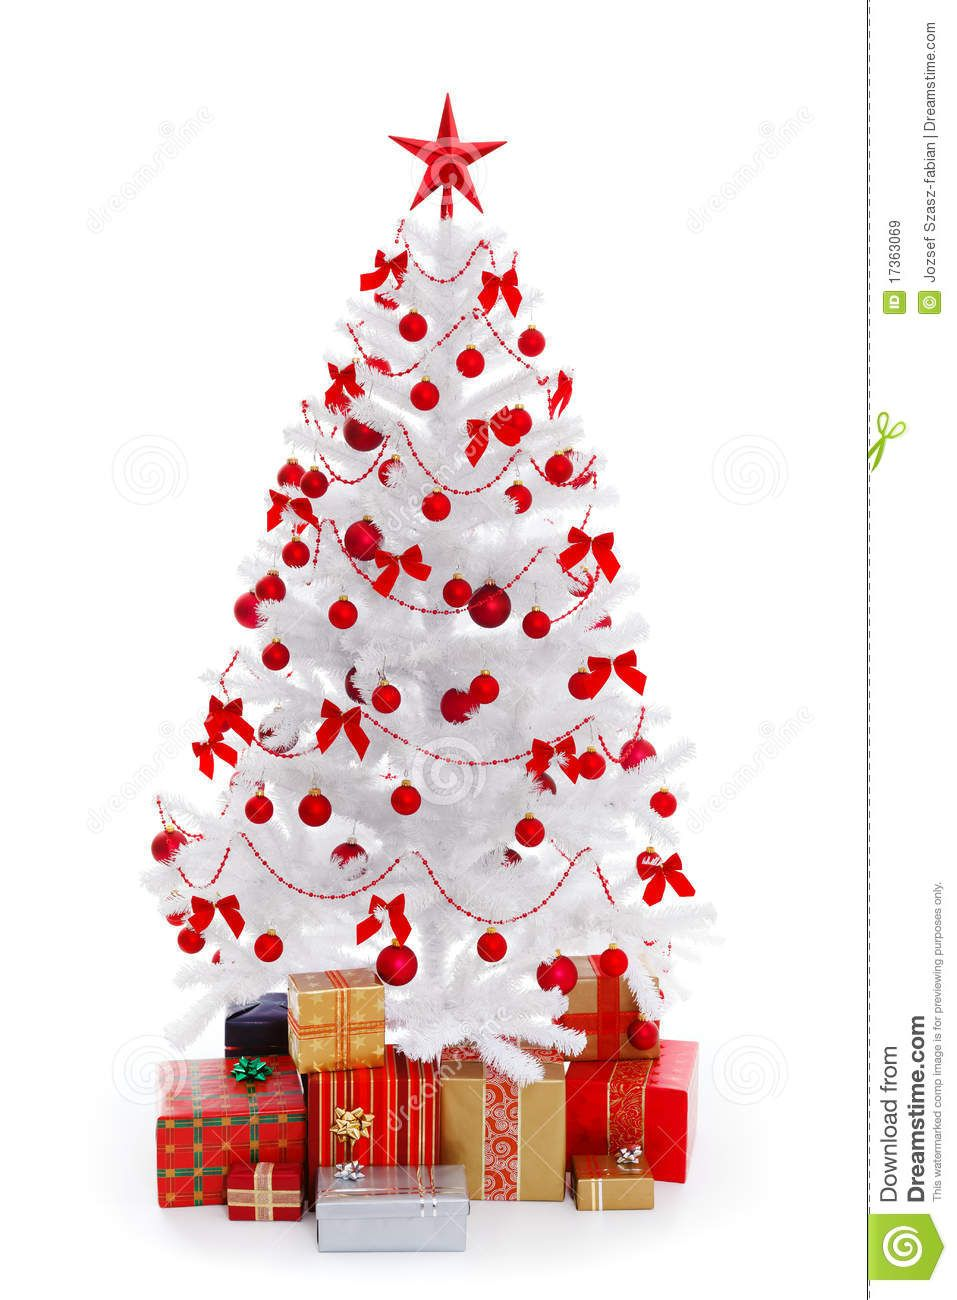 White Christmas Tree With Gifts And Red Decoration - Download From ...